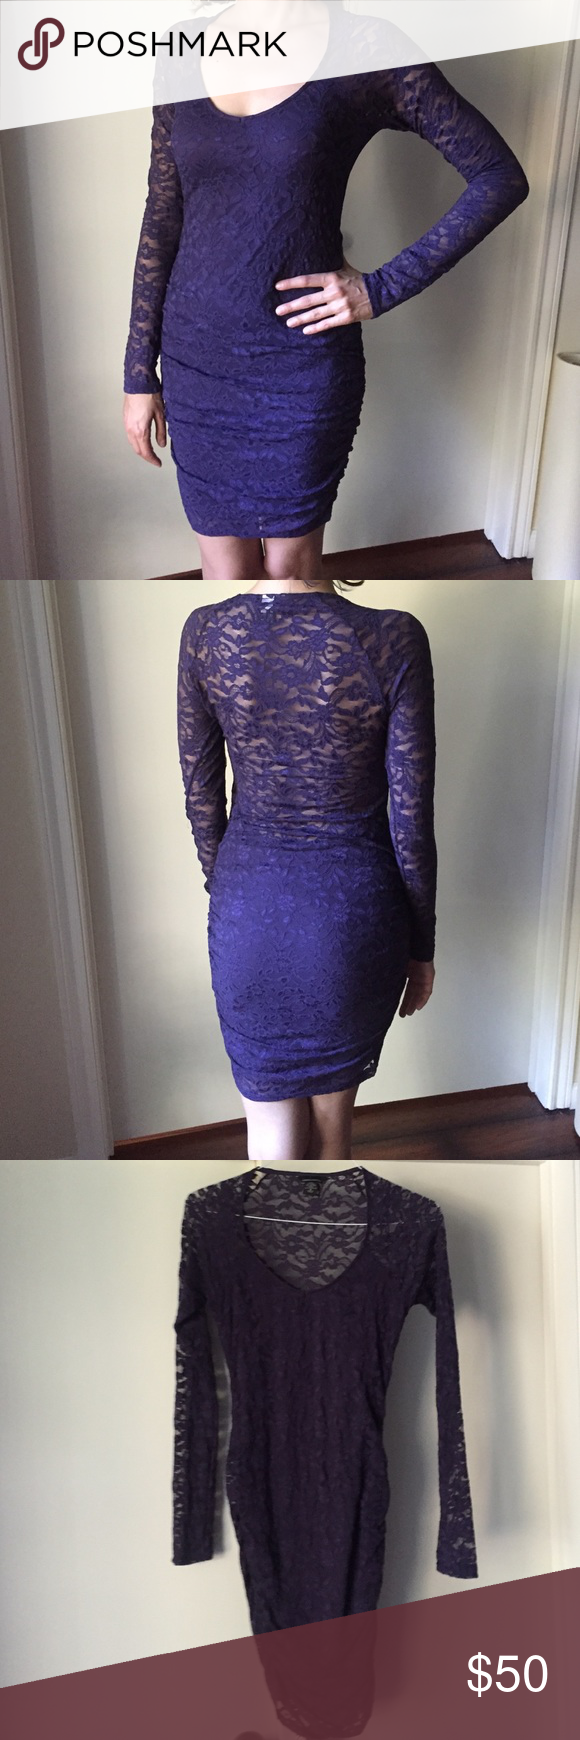 """✨Sale✨Victoria's Secret purple bodycon lace dress Like New dark purple lace lined, long sleeve dress. Ruched on the sides. Fabric is elastic and soft. Bought from Victoria's Secret website. Worn only once. Size S. Model on picture is 5' 10"""". Dresses"""